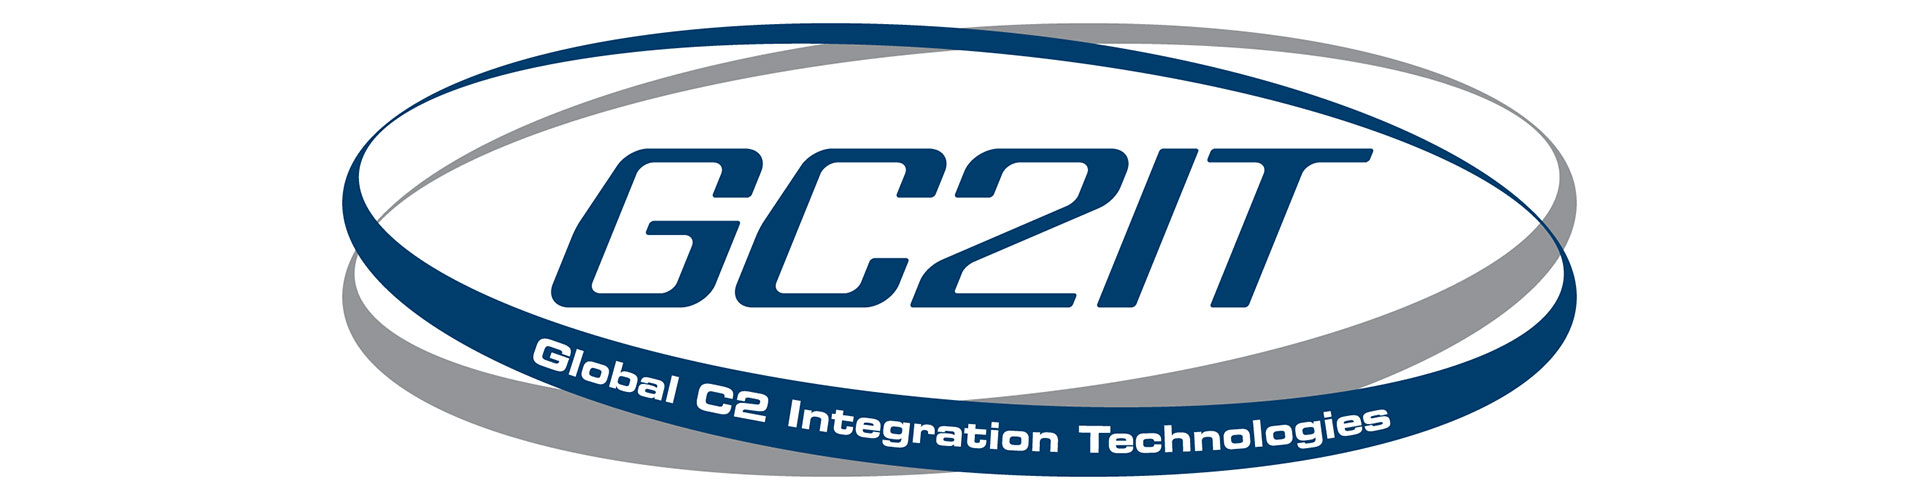 Global C2 Integration Technologies logo